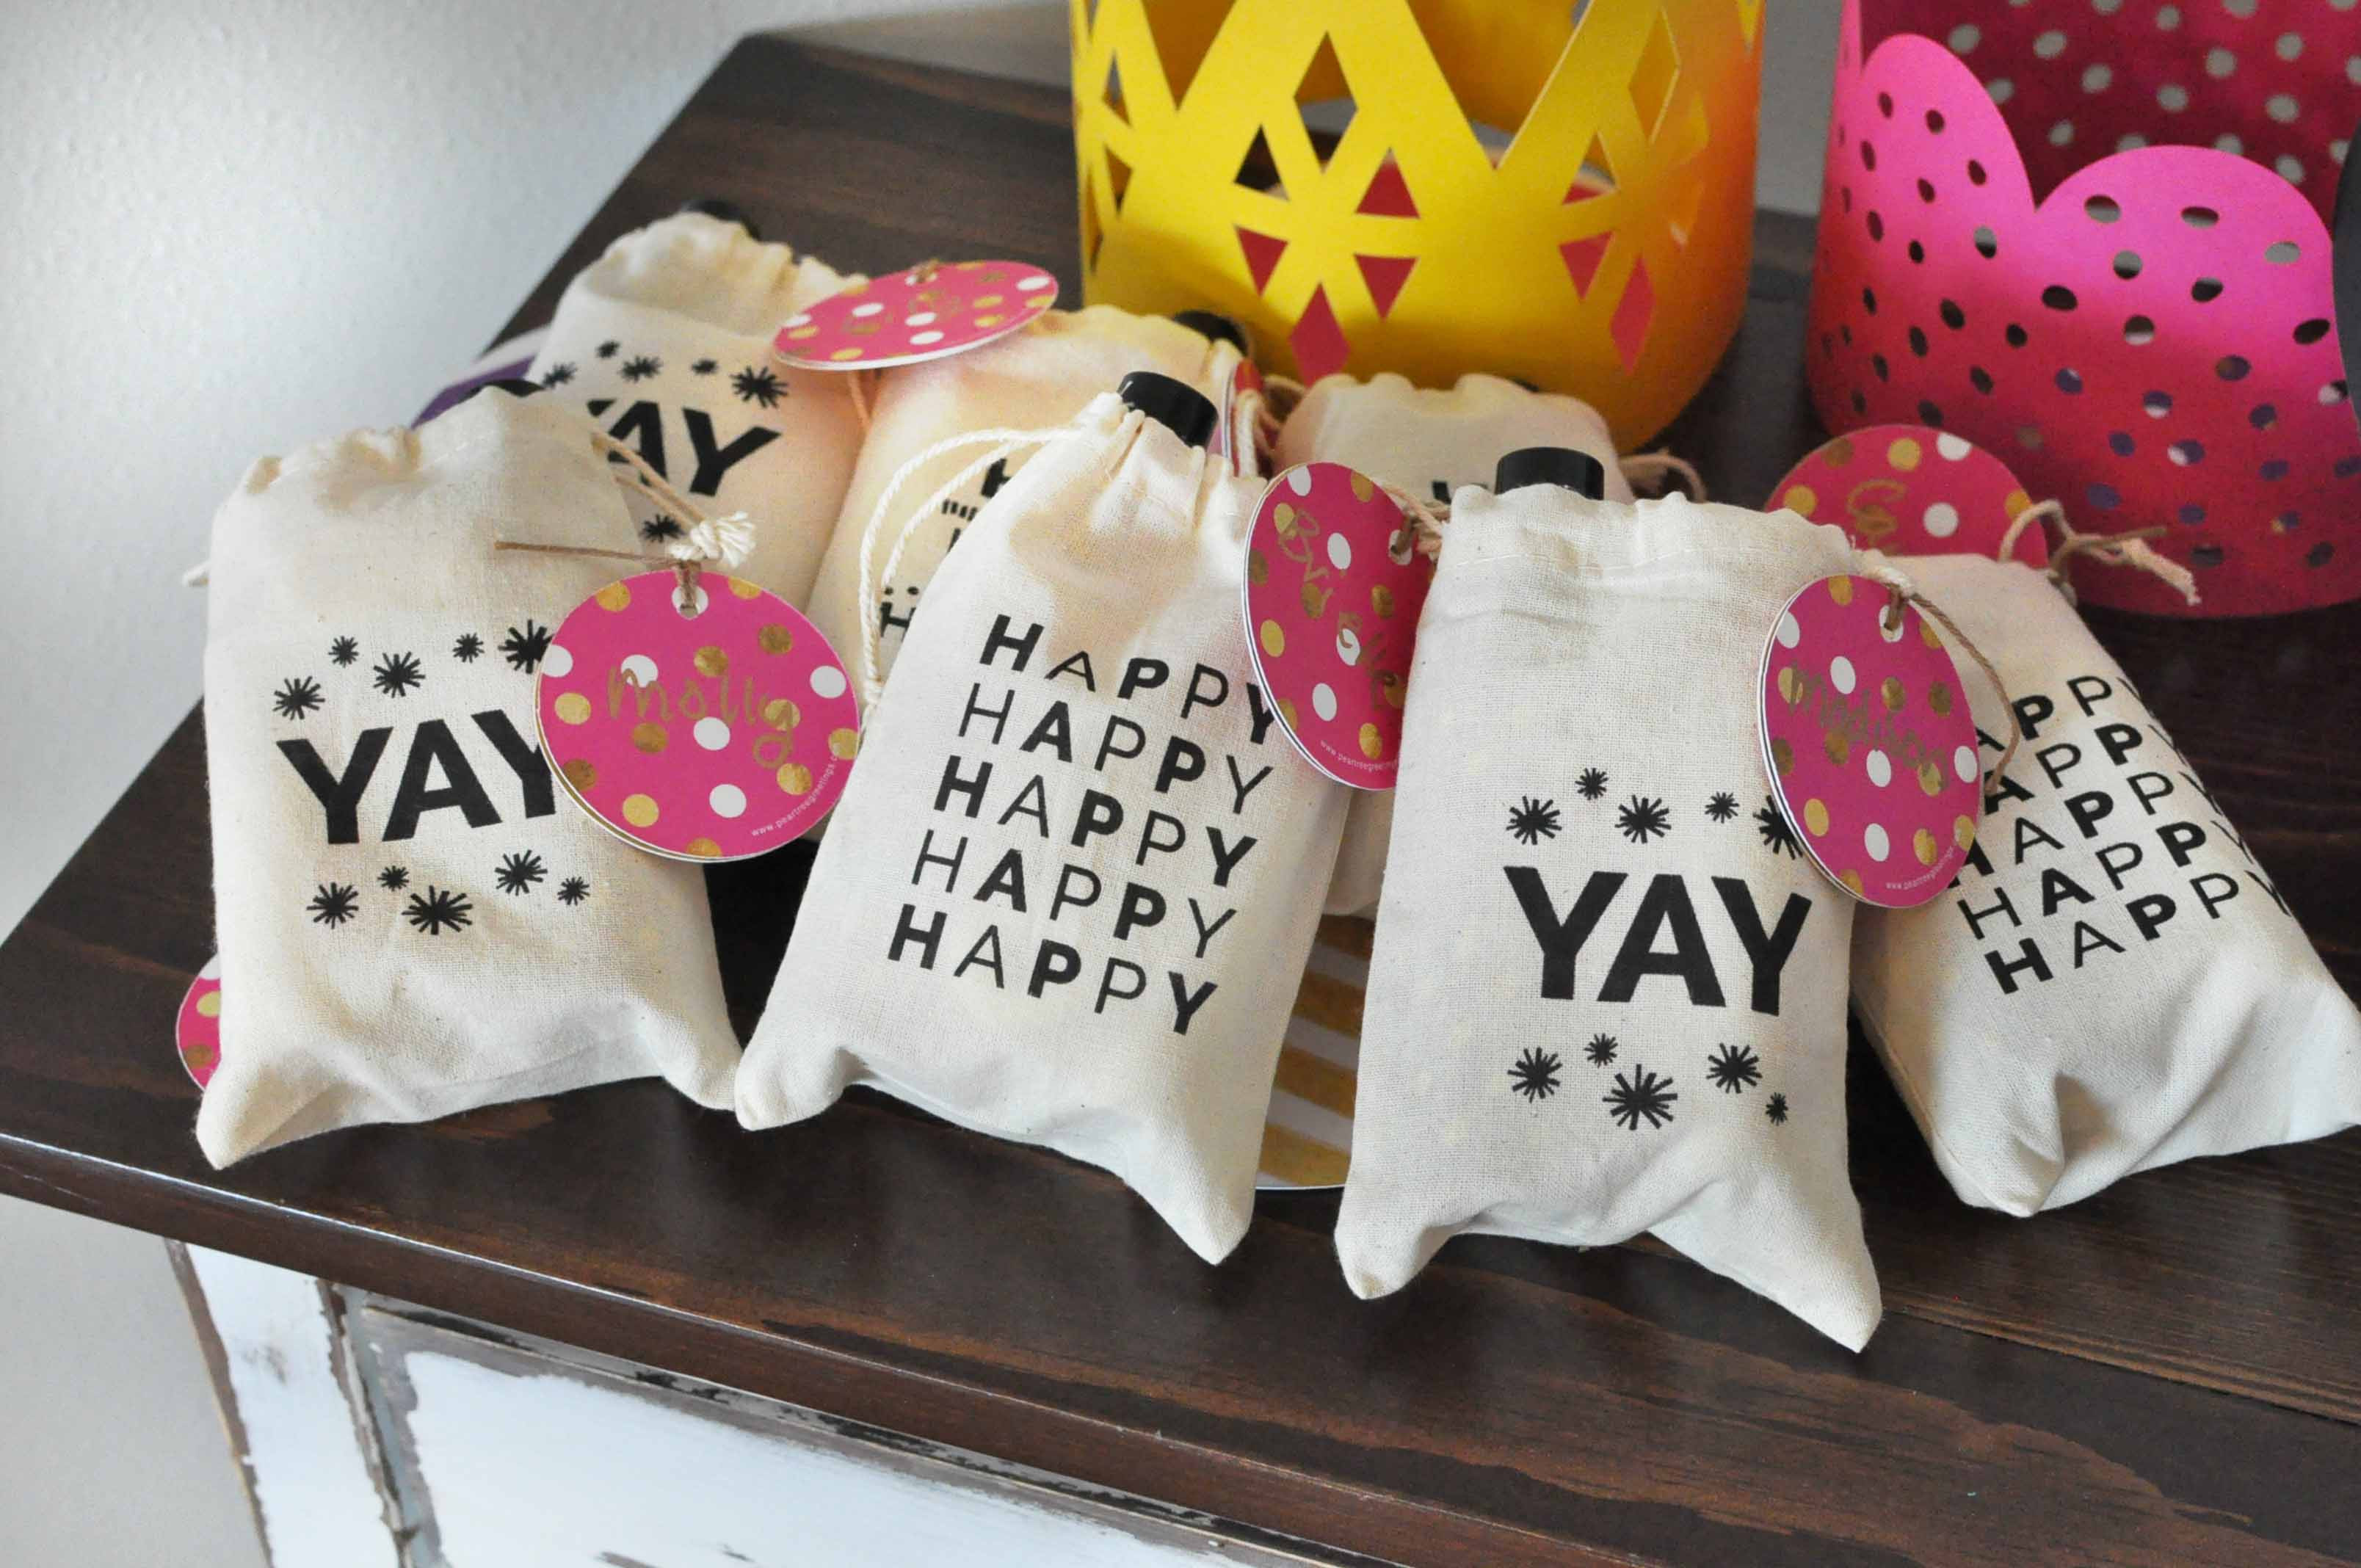 Best ideas about Birthday Gift Bag Ideas . Save or Pin best birthday party goo bag ideas Now.